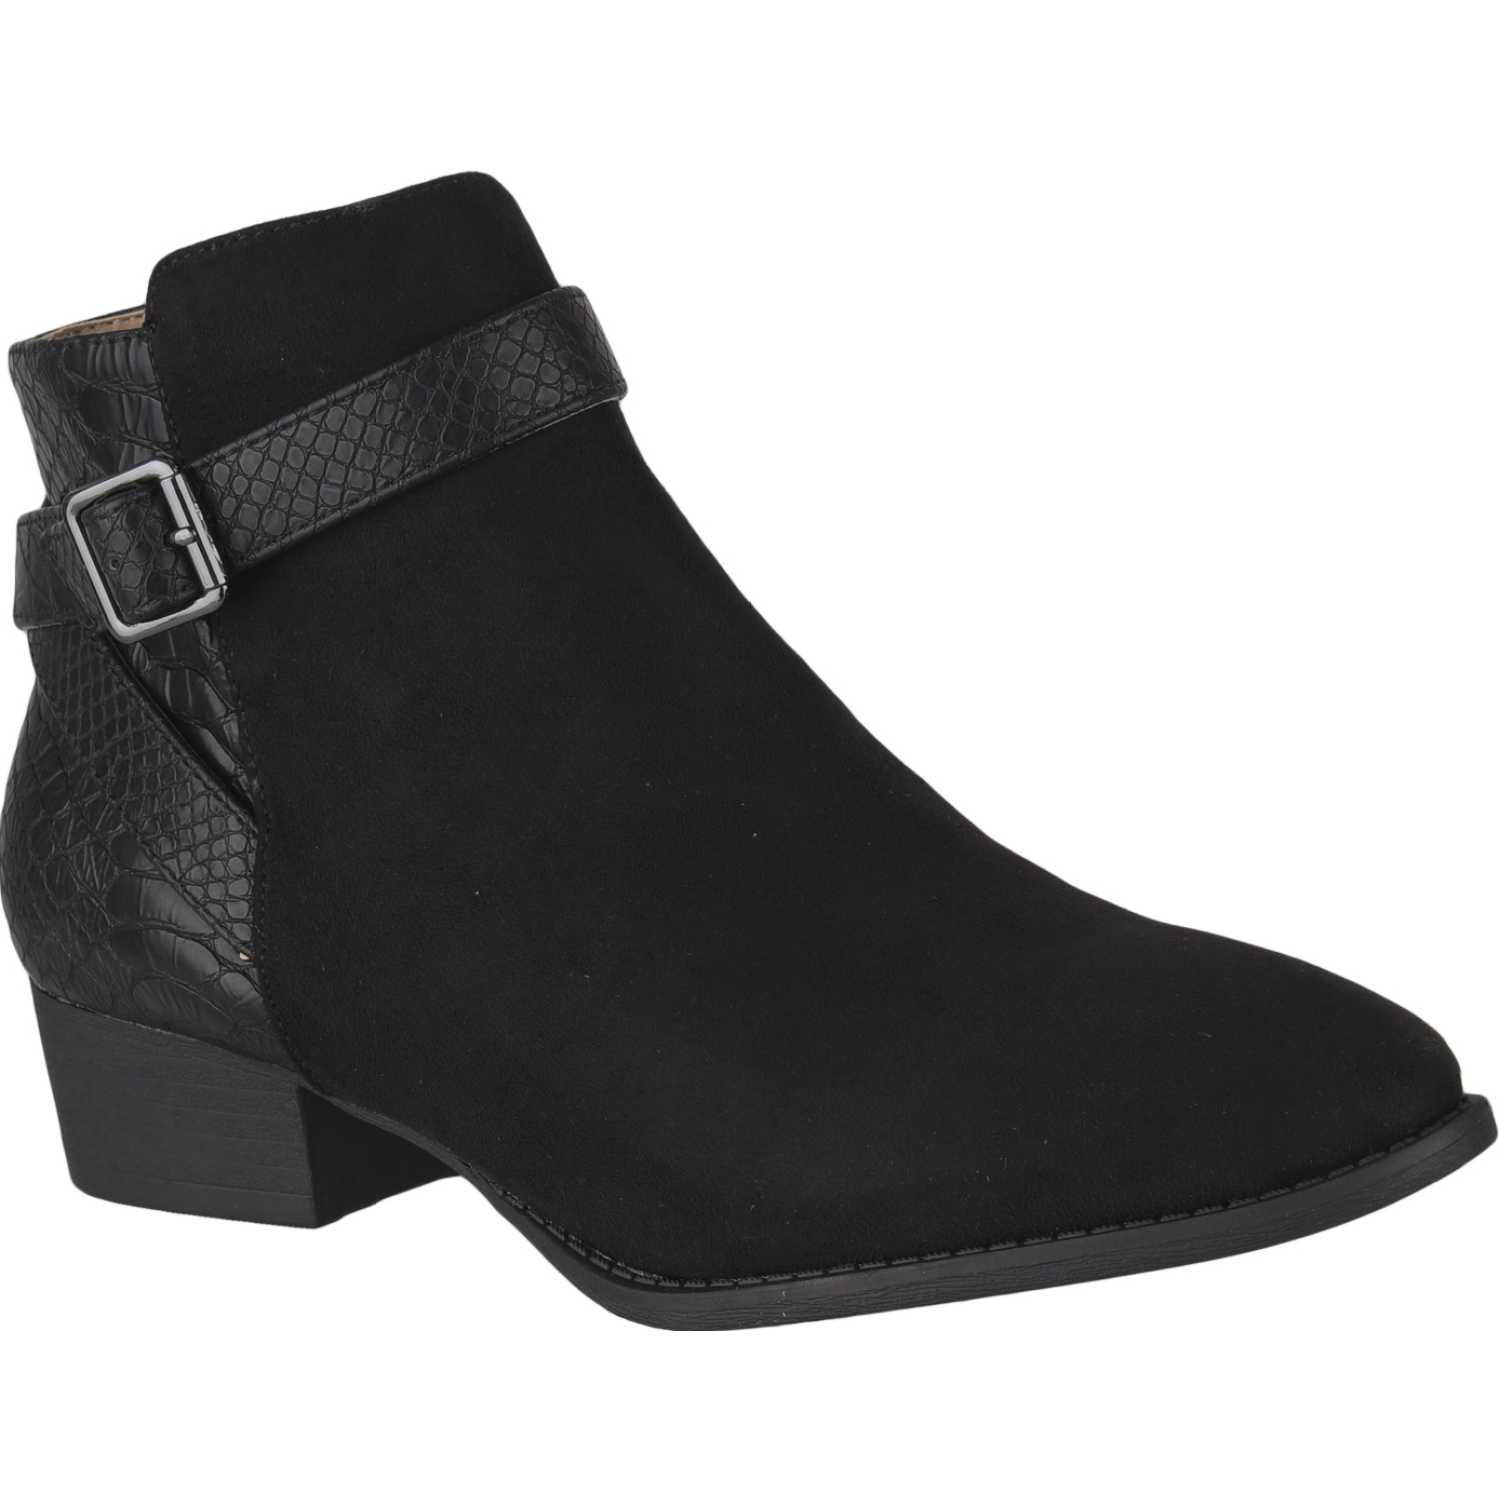 Hush Puppies ELVIS Negro Botines